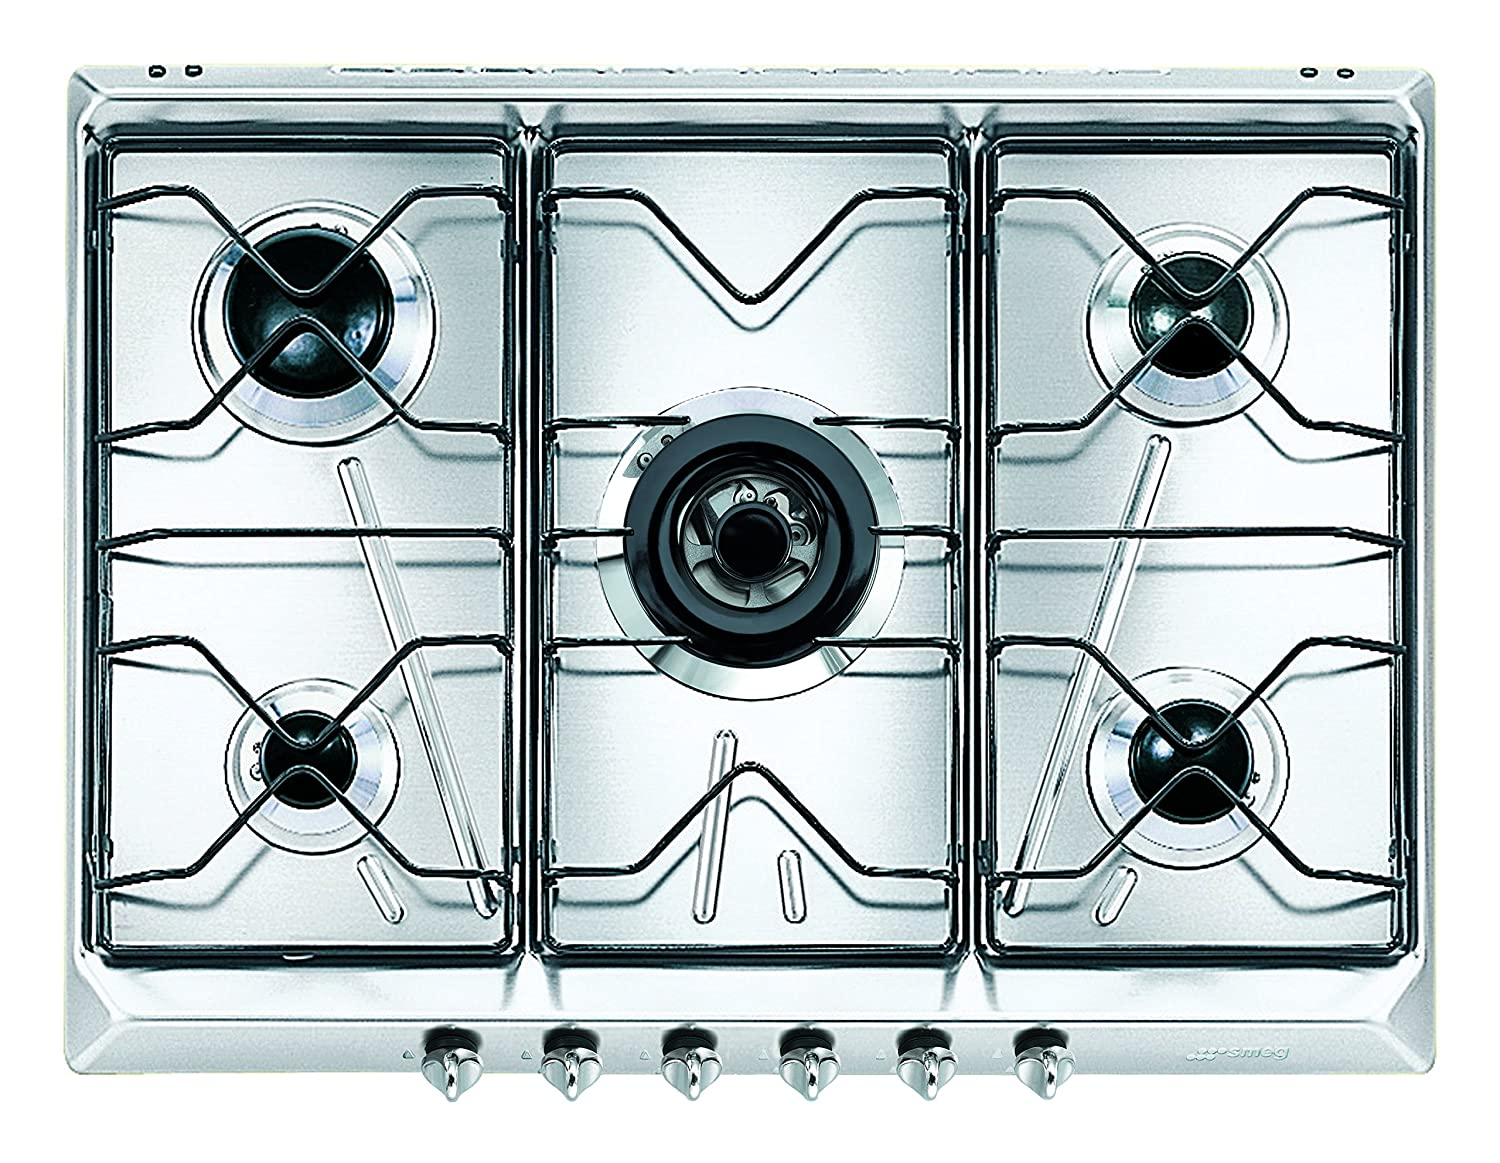 Smeg SRV576-5 Built-in Gas Stainless steel hob - hobs (Built-in ...